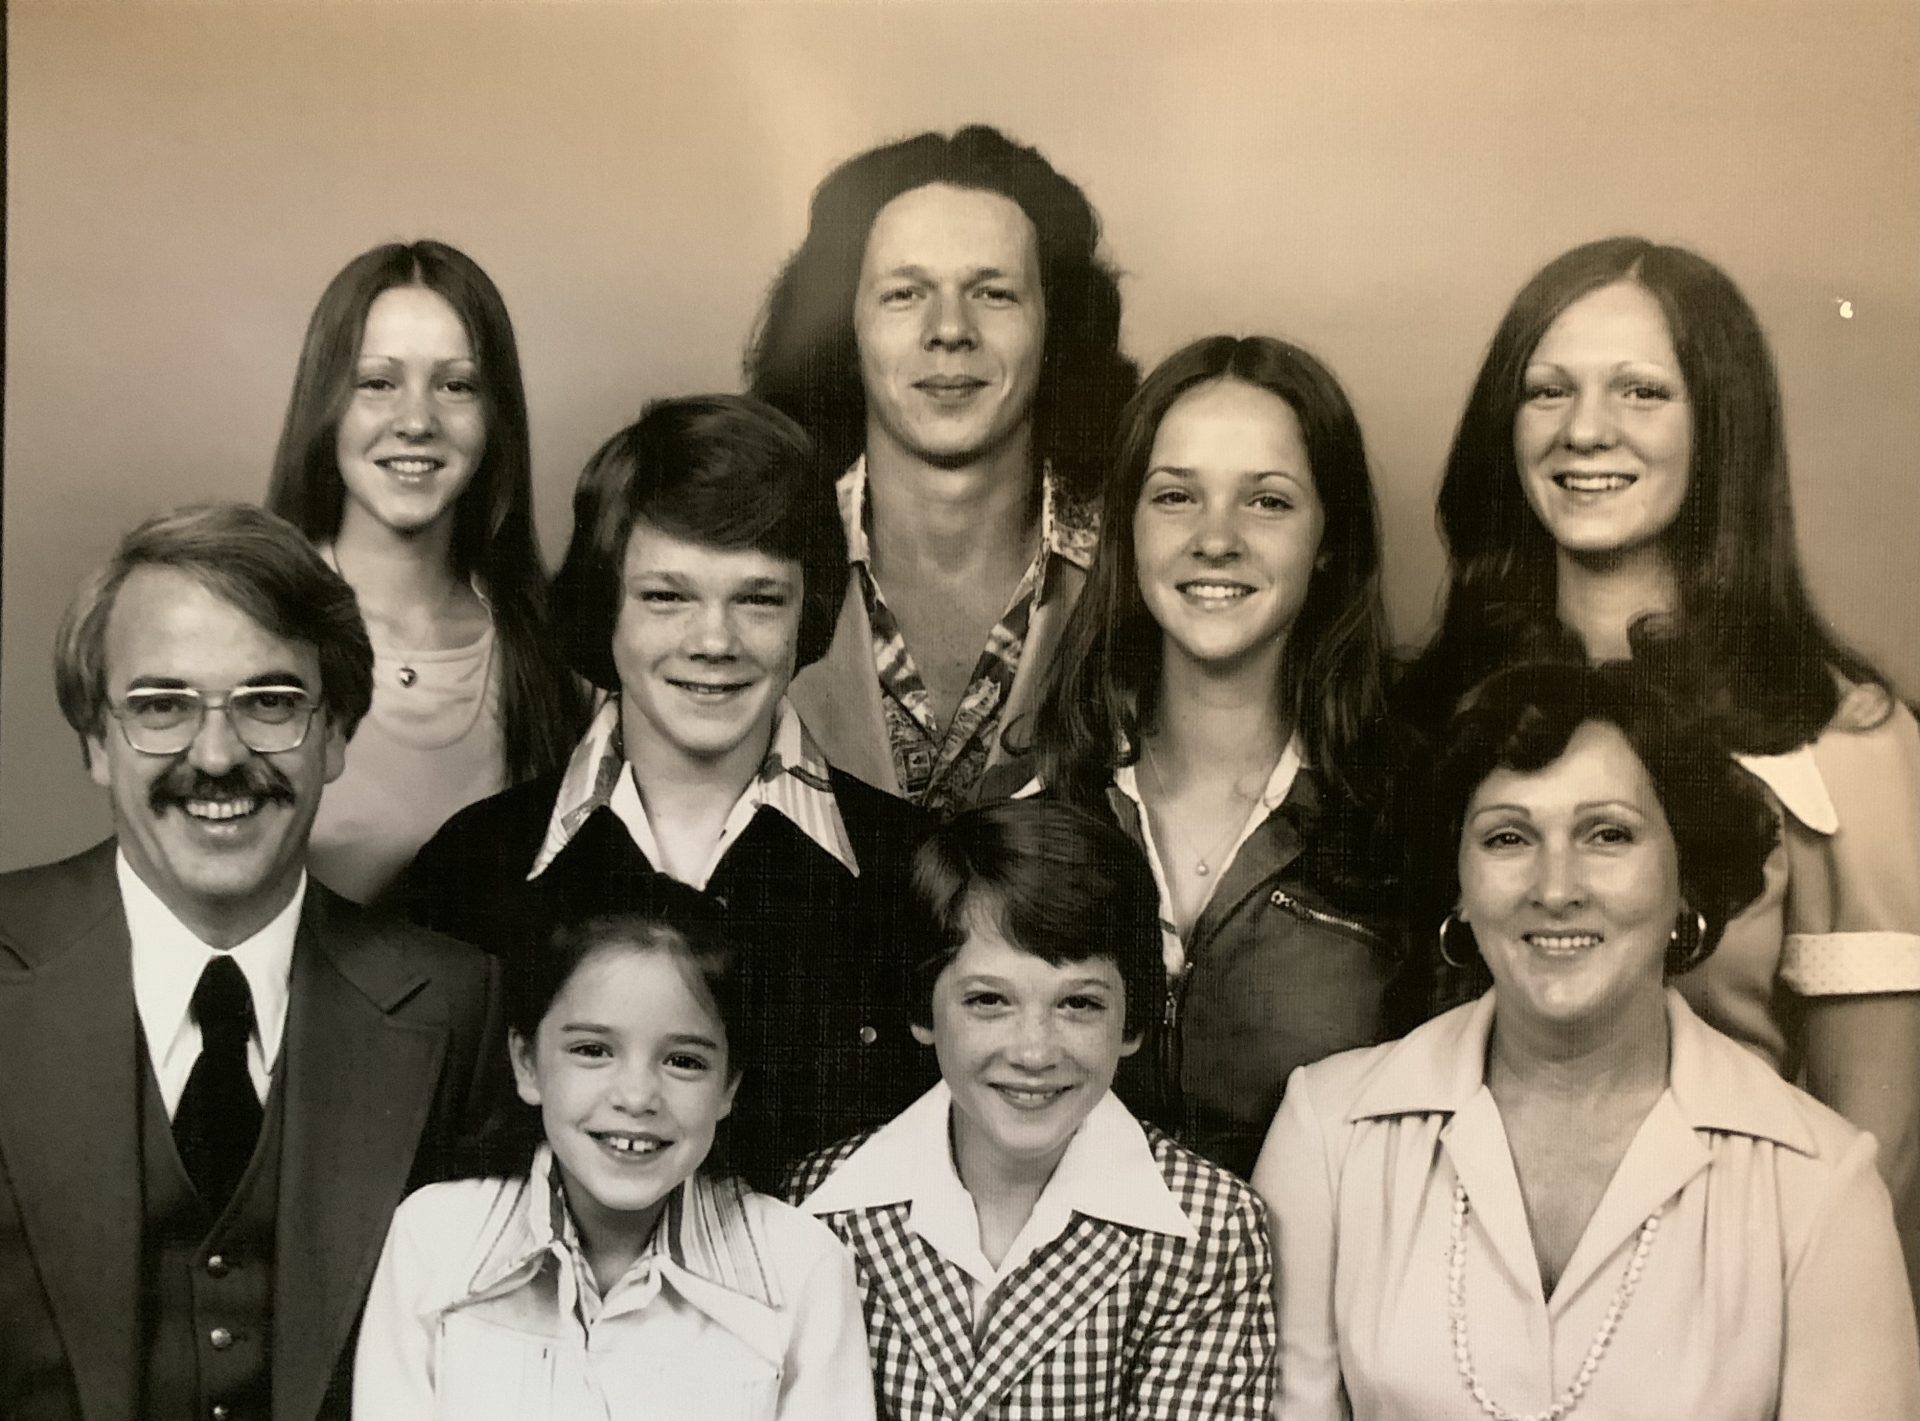 The Family circa early '70s.